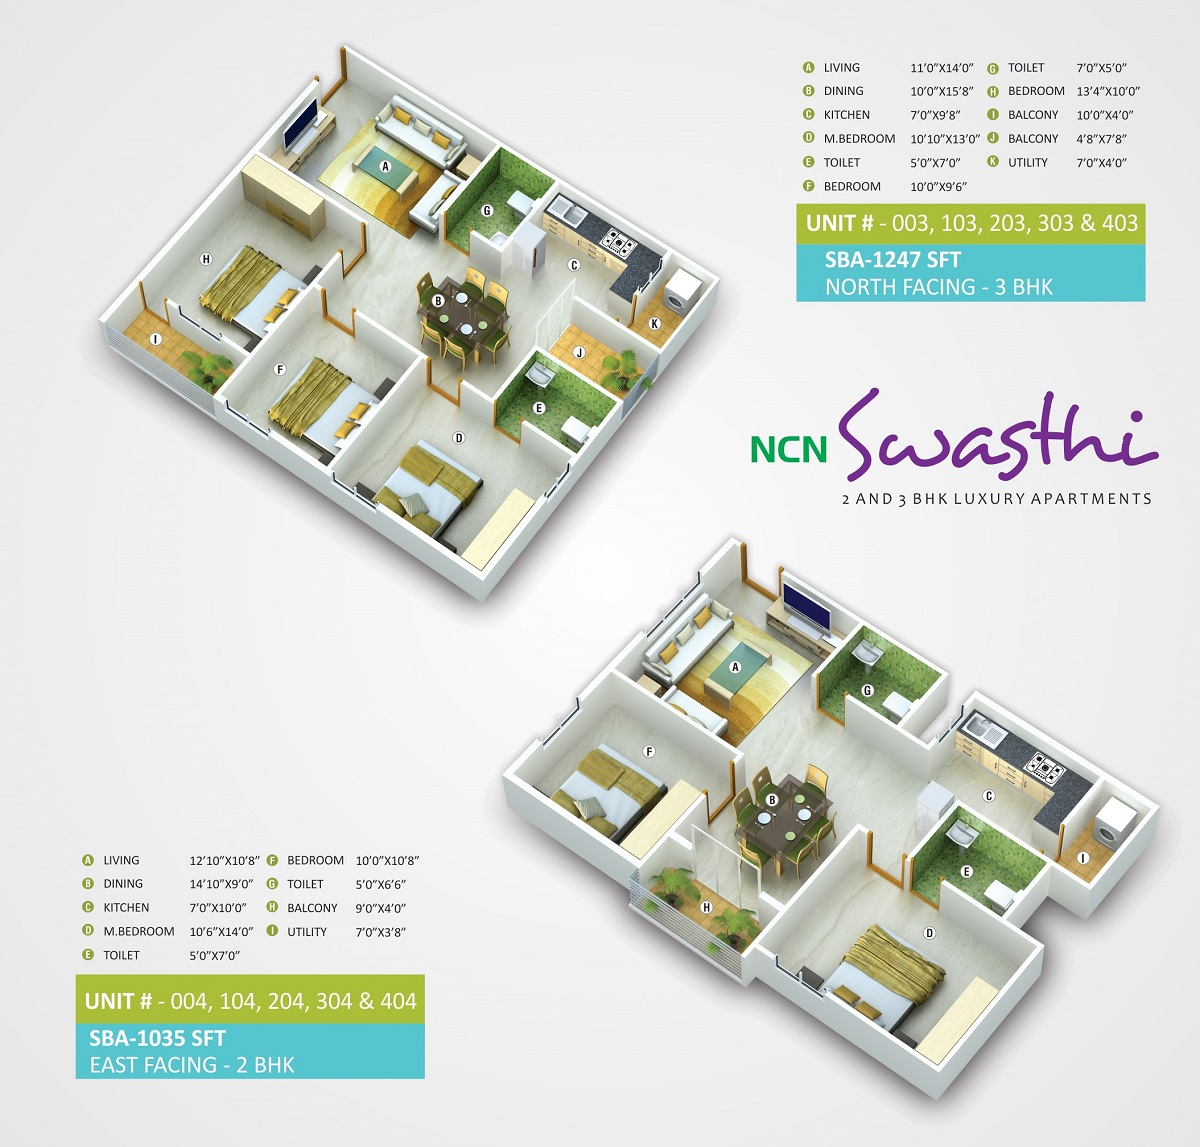 2 BHK West Facing 1044 sq ft Apartment